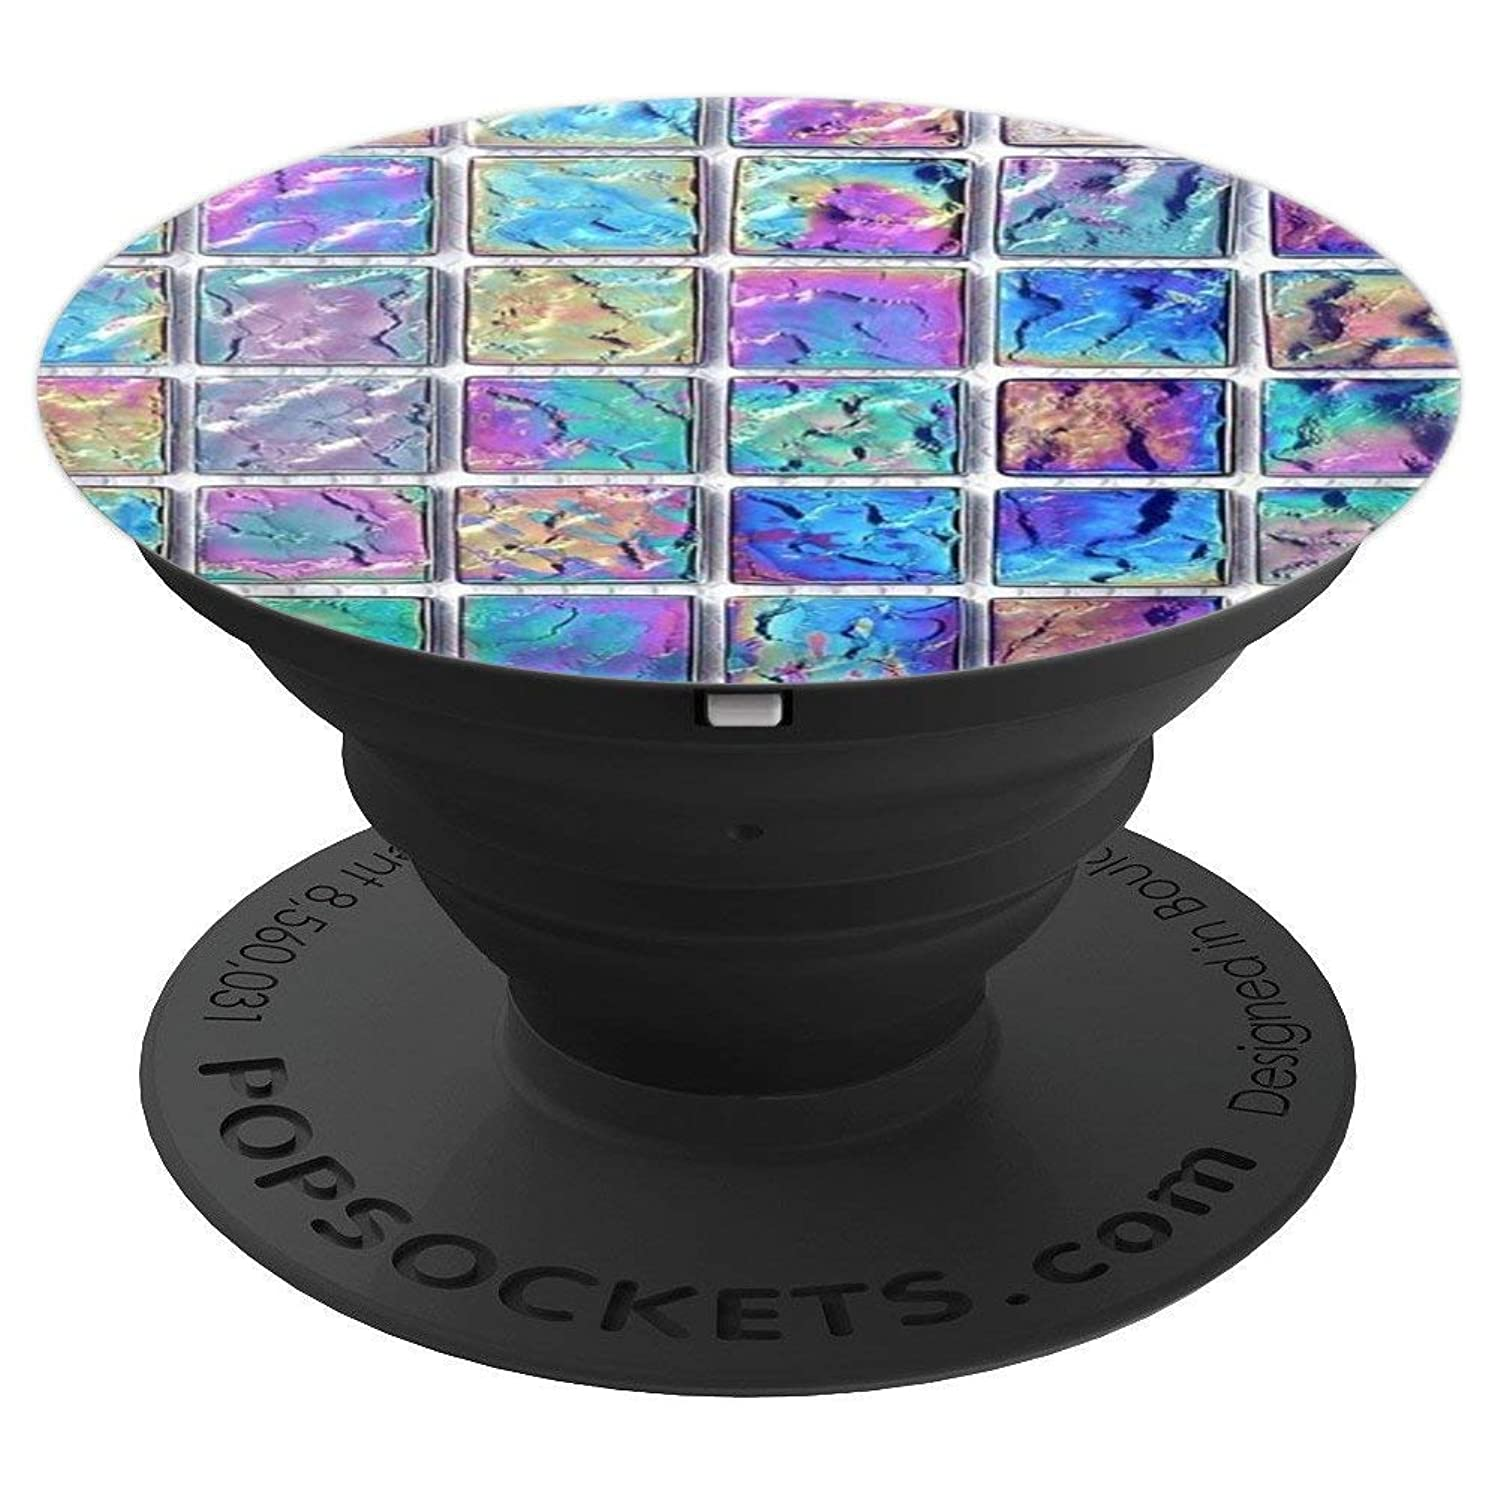 Rainbow, Iridescent Opal Mosaic Tiles, Shimmer Stone Design - PopSockets Grip and Stand for Phones and Tablets